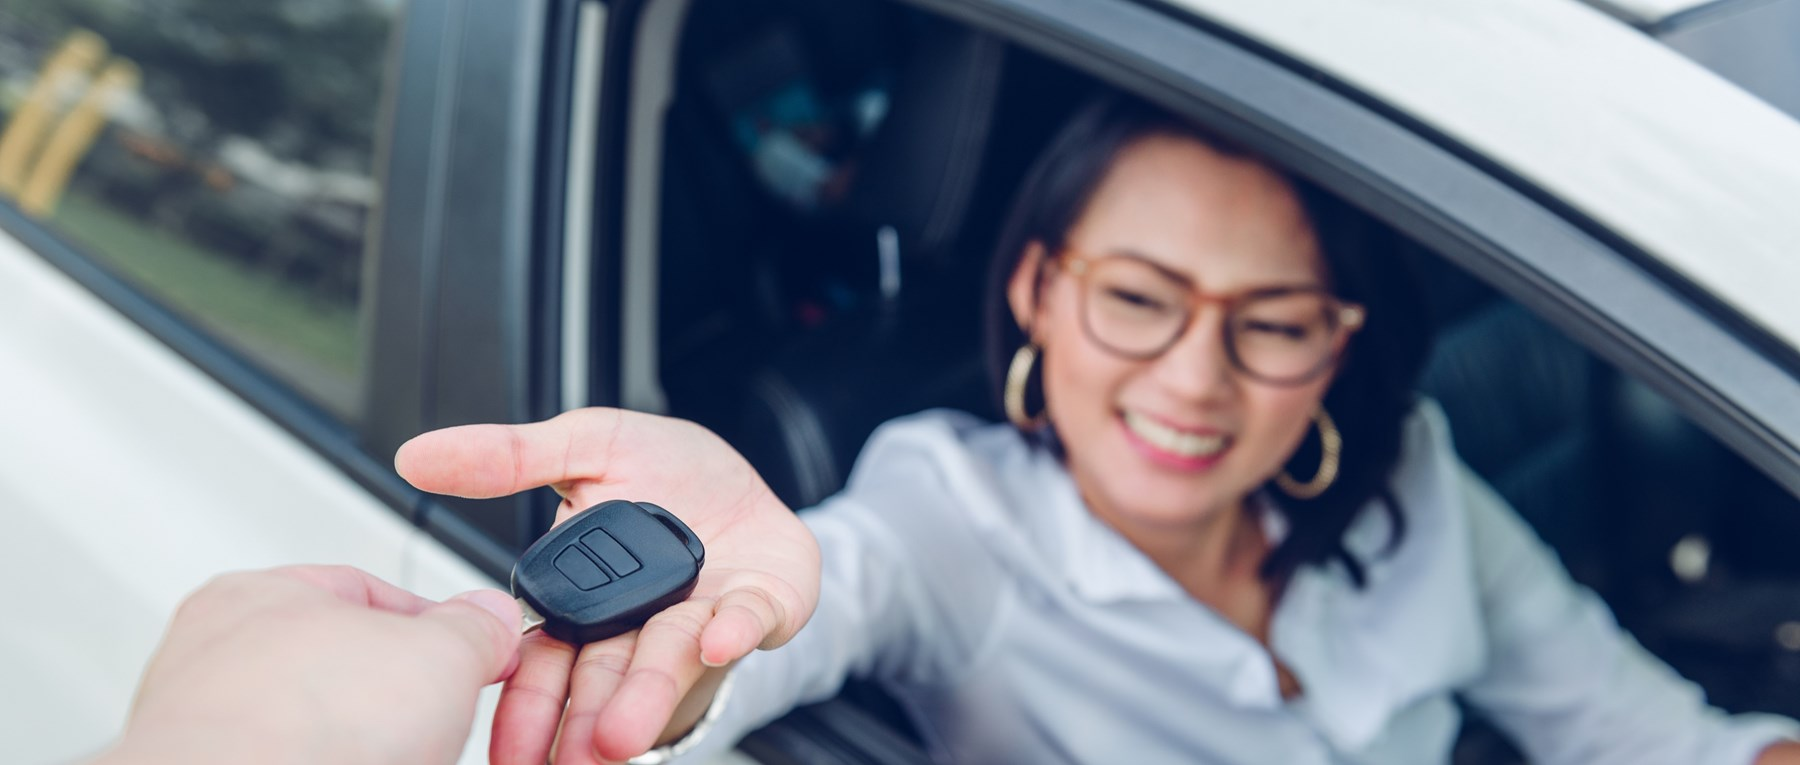 Young woman in car getting car key